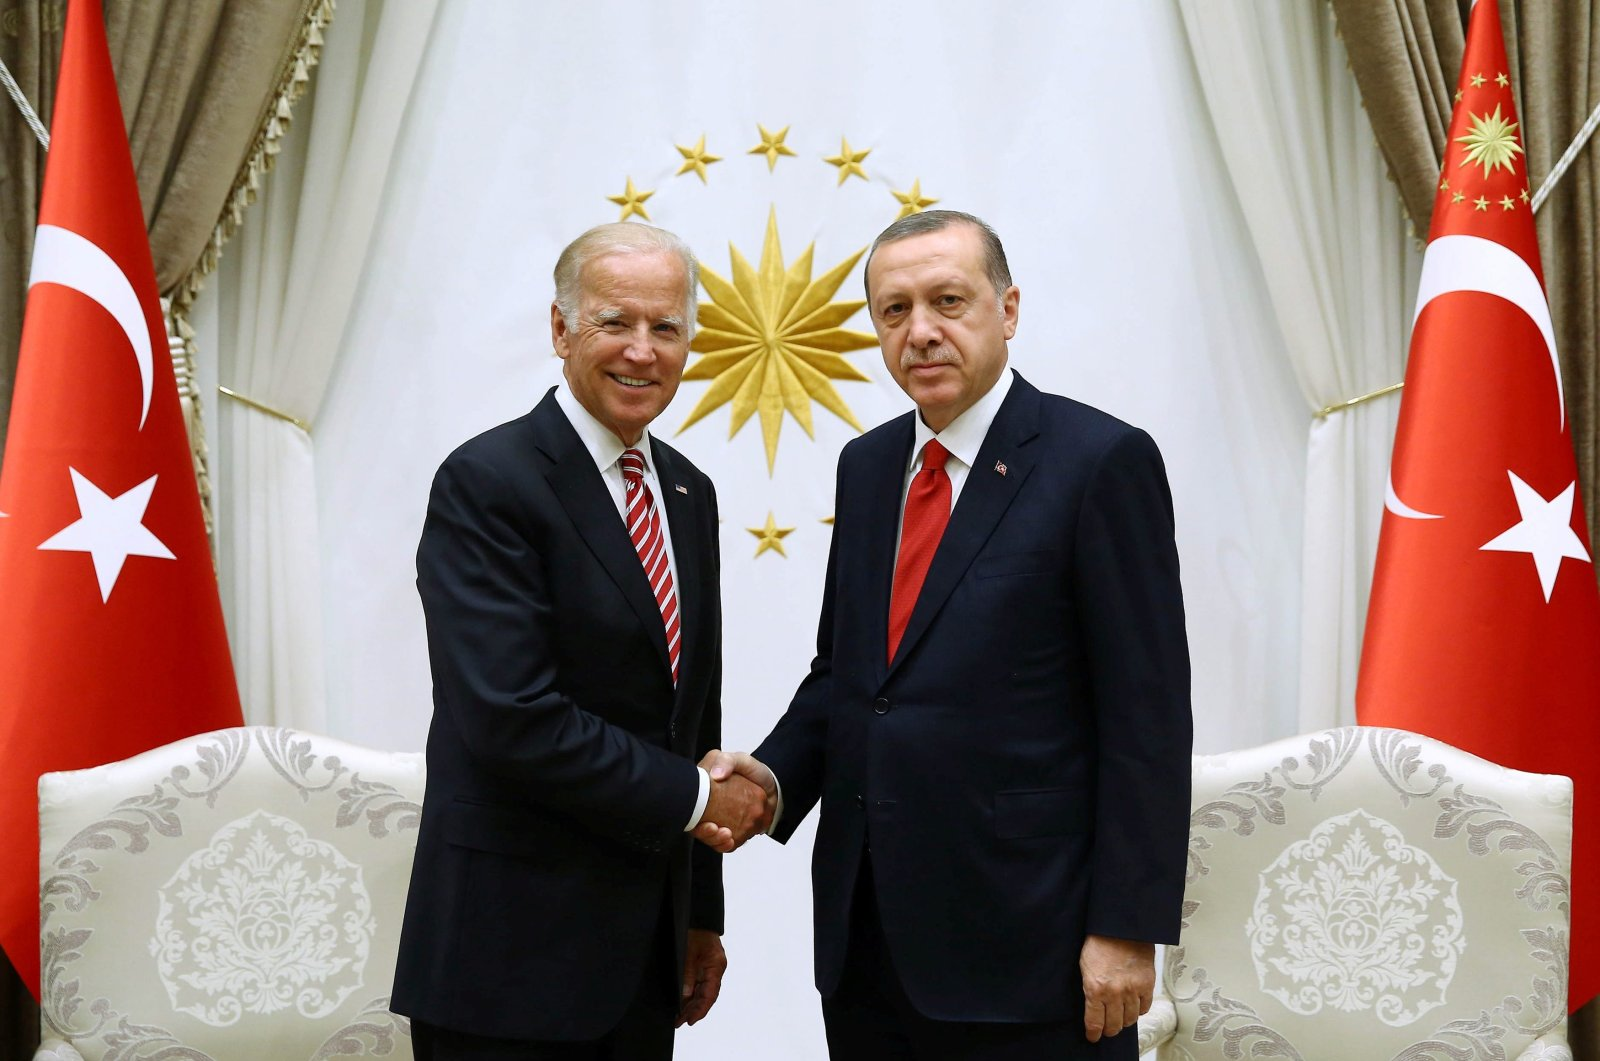 President Recep Tayyip Erdoğan meets with U.S. then-Vice President Joe Biden at the Presidential Complex in Ankara, Turkey, Aug. 24, 2016. (Reuters File Photo)